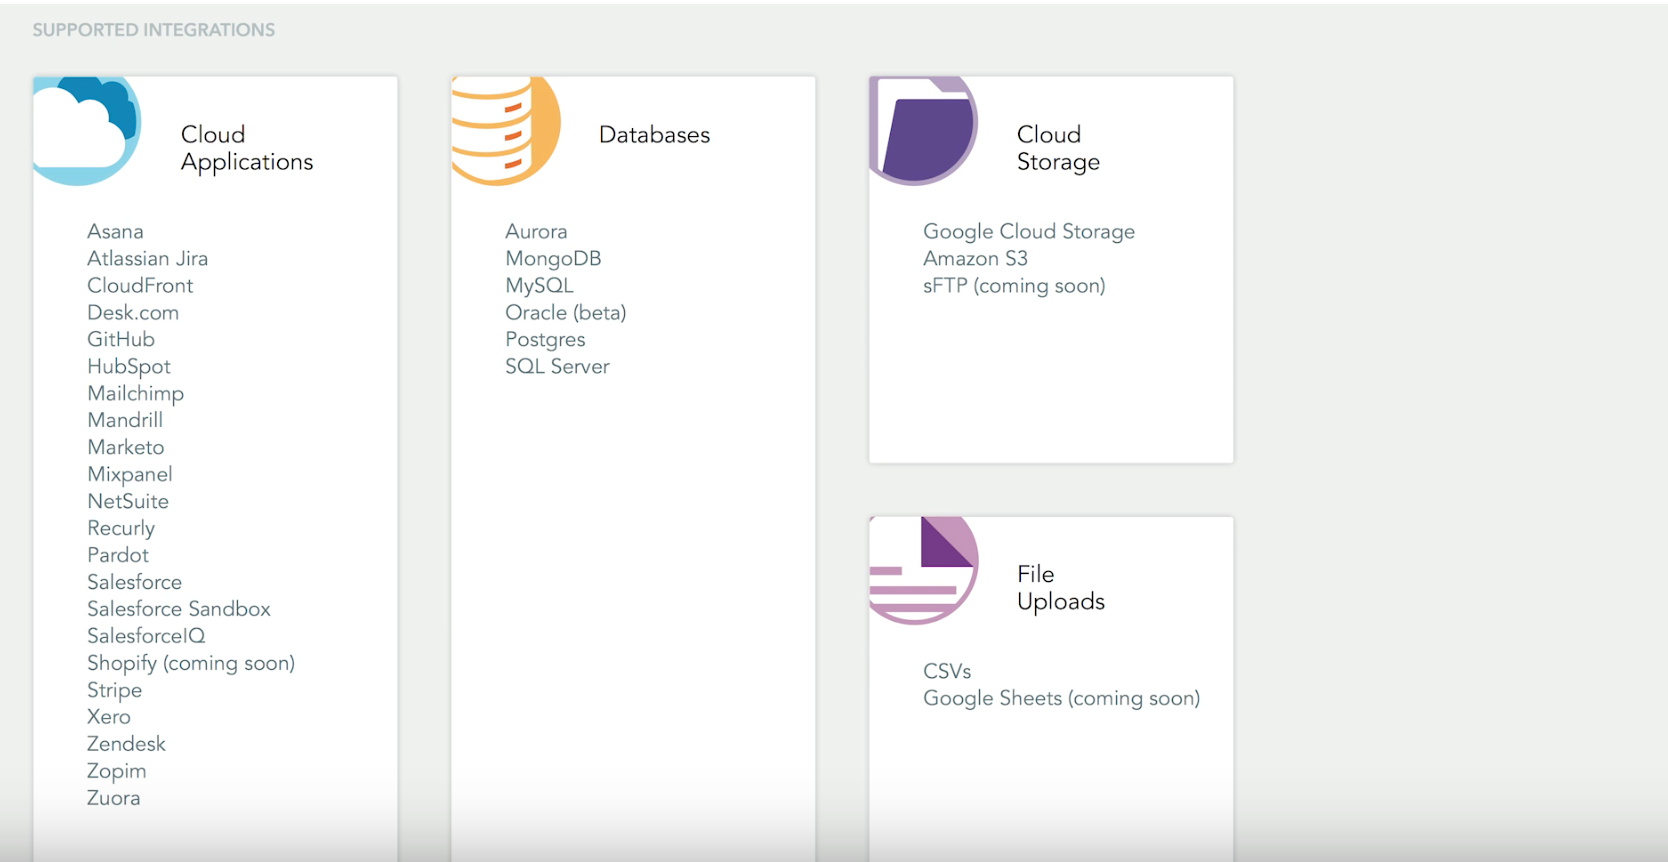 Supports integration with a wide range of cloud applications, databases, and cloud storage apps